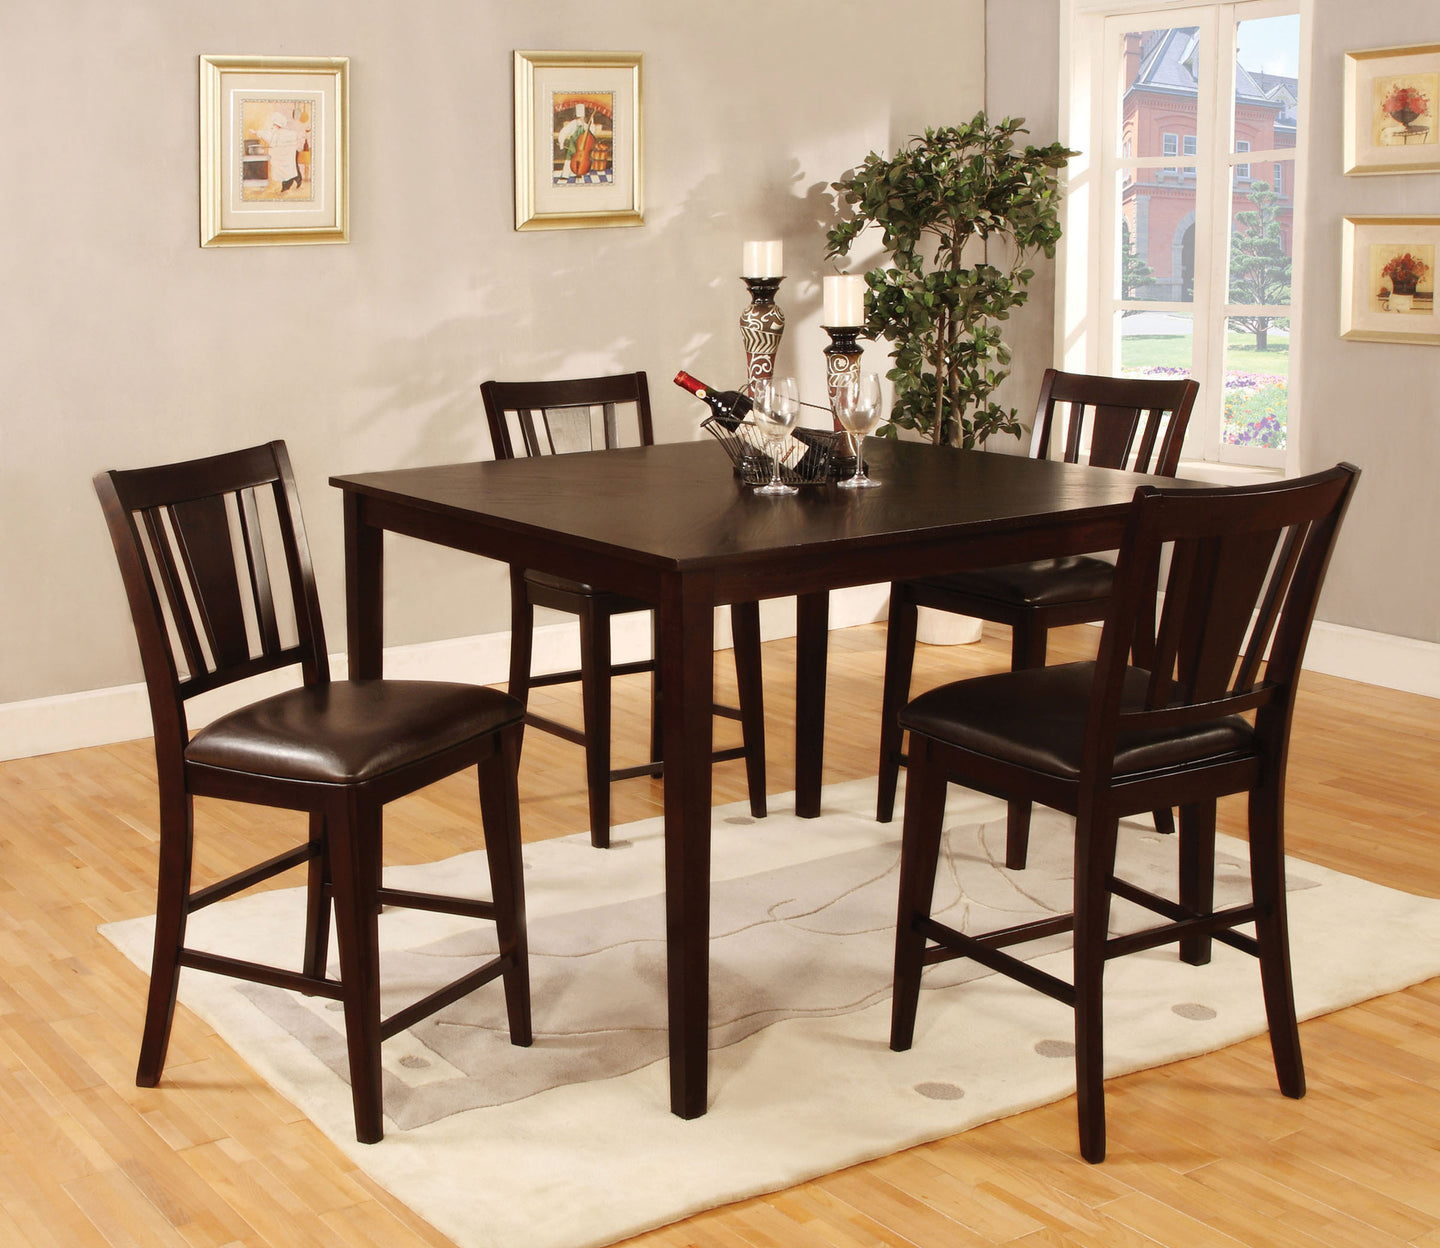 Furniture Of America Bridgette II Espresso Wood Finish 5 Piece Counter Height Dining Table Set